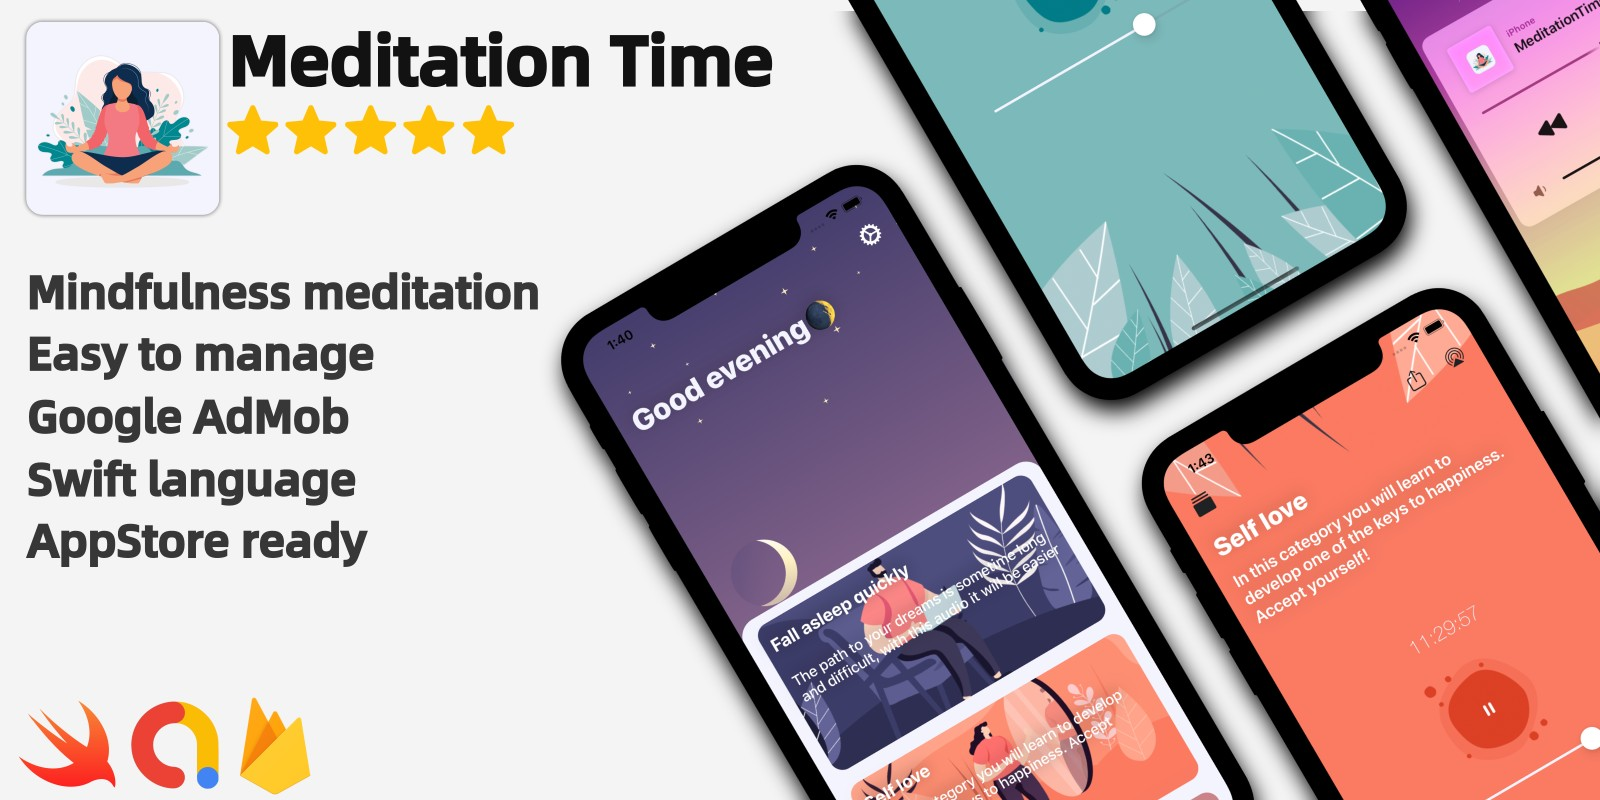 Meditation Time - Full iOS Application